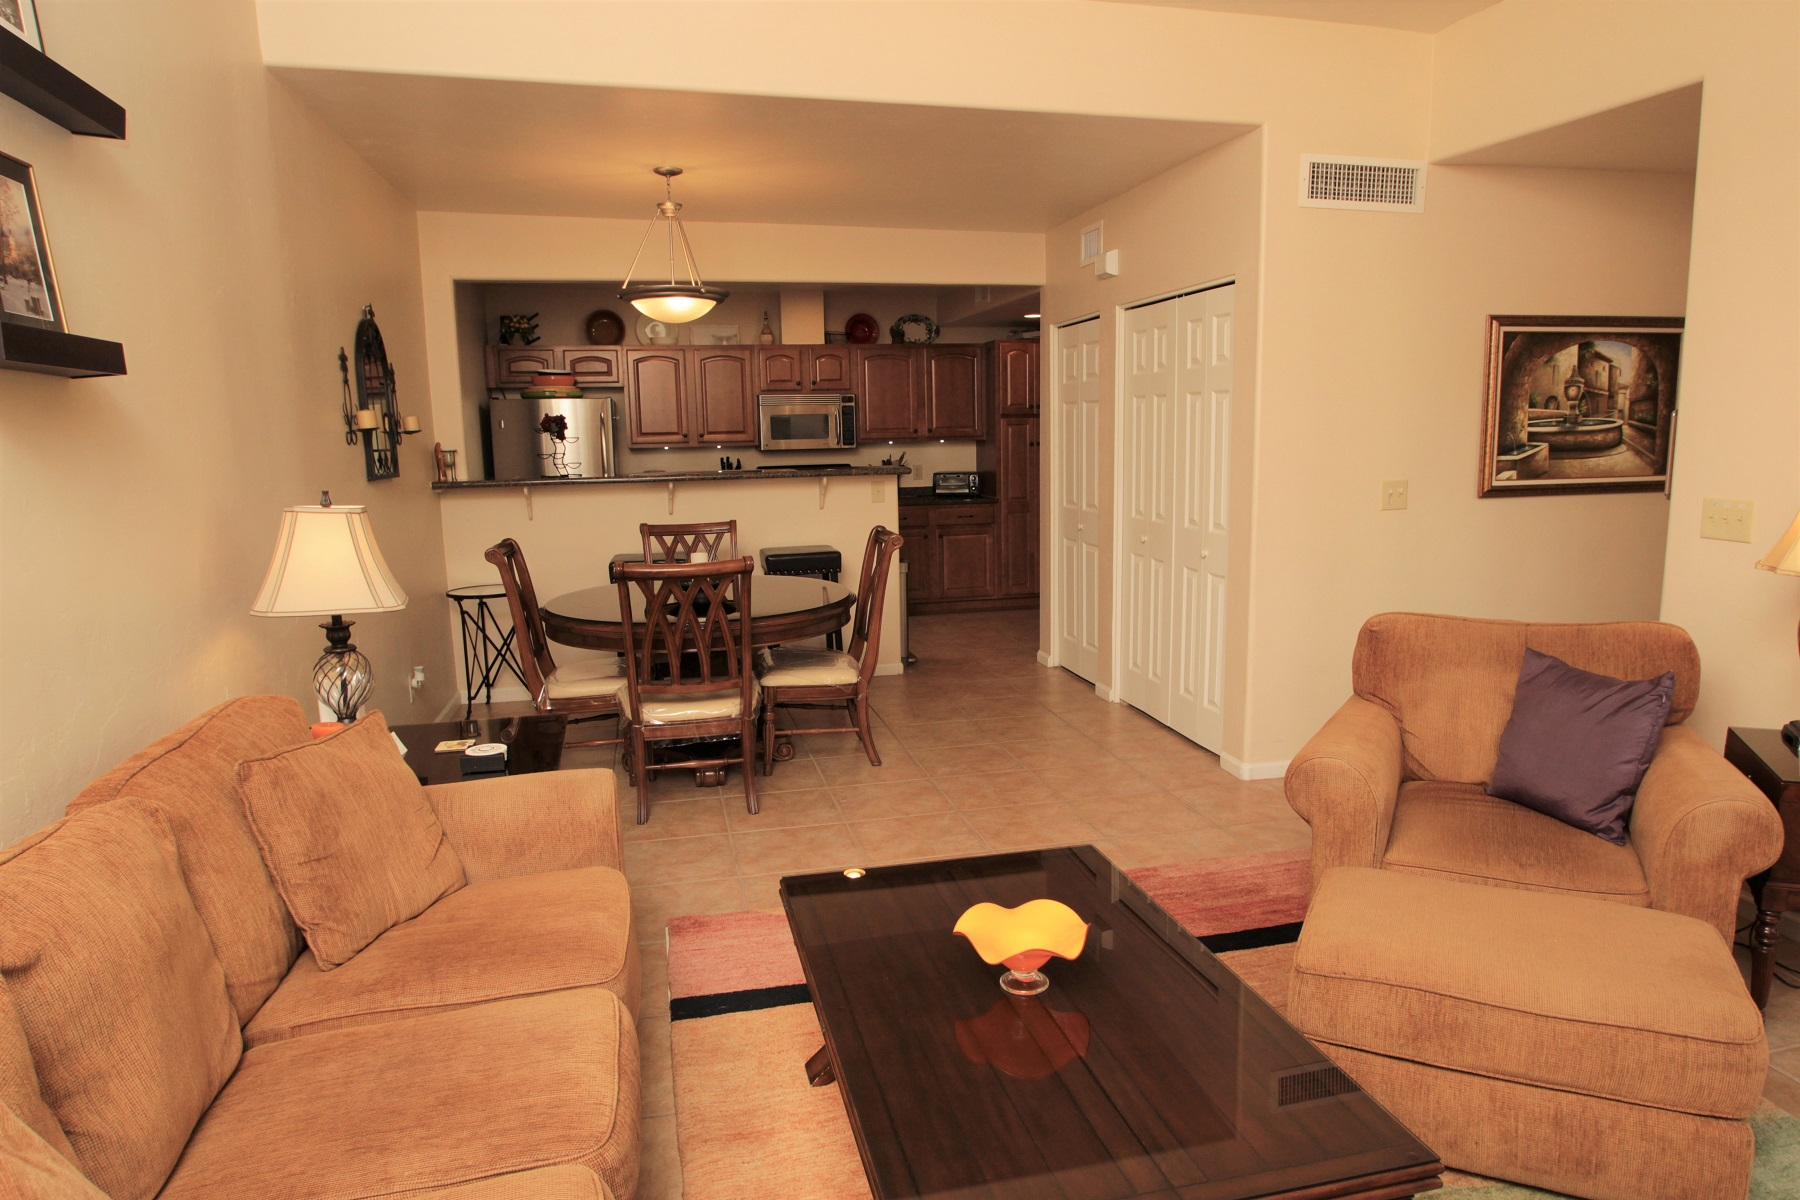 Floor Plan for Spacious Two Bedroom, Two Bath, Garden Level Condo With Enclosed Patio at The Reflections in the Catalinas